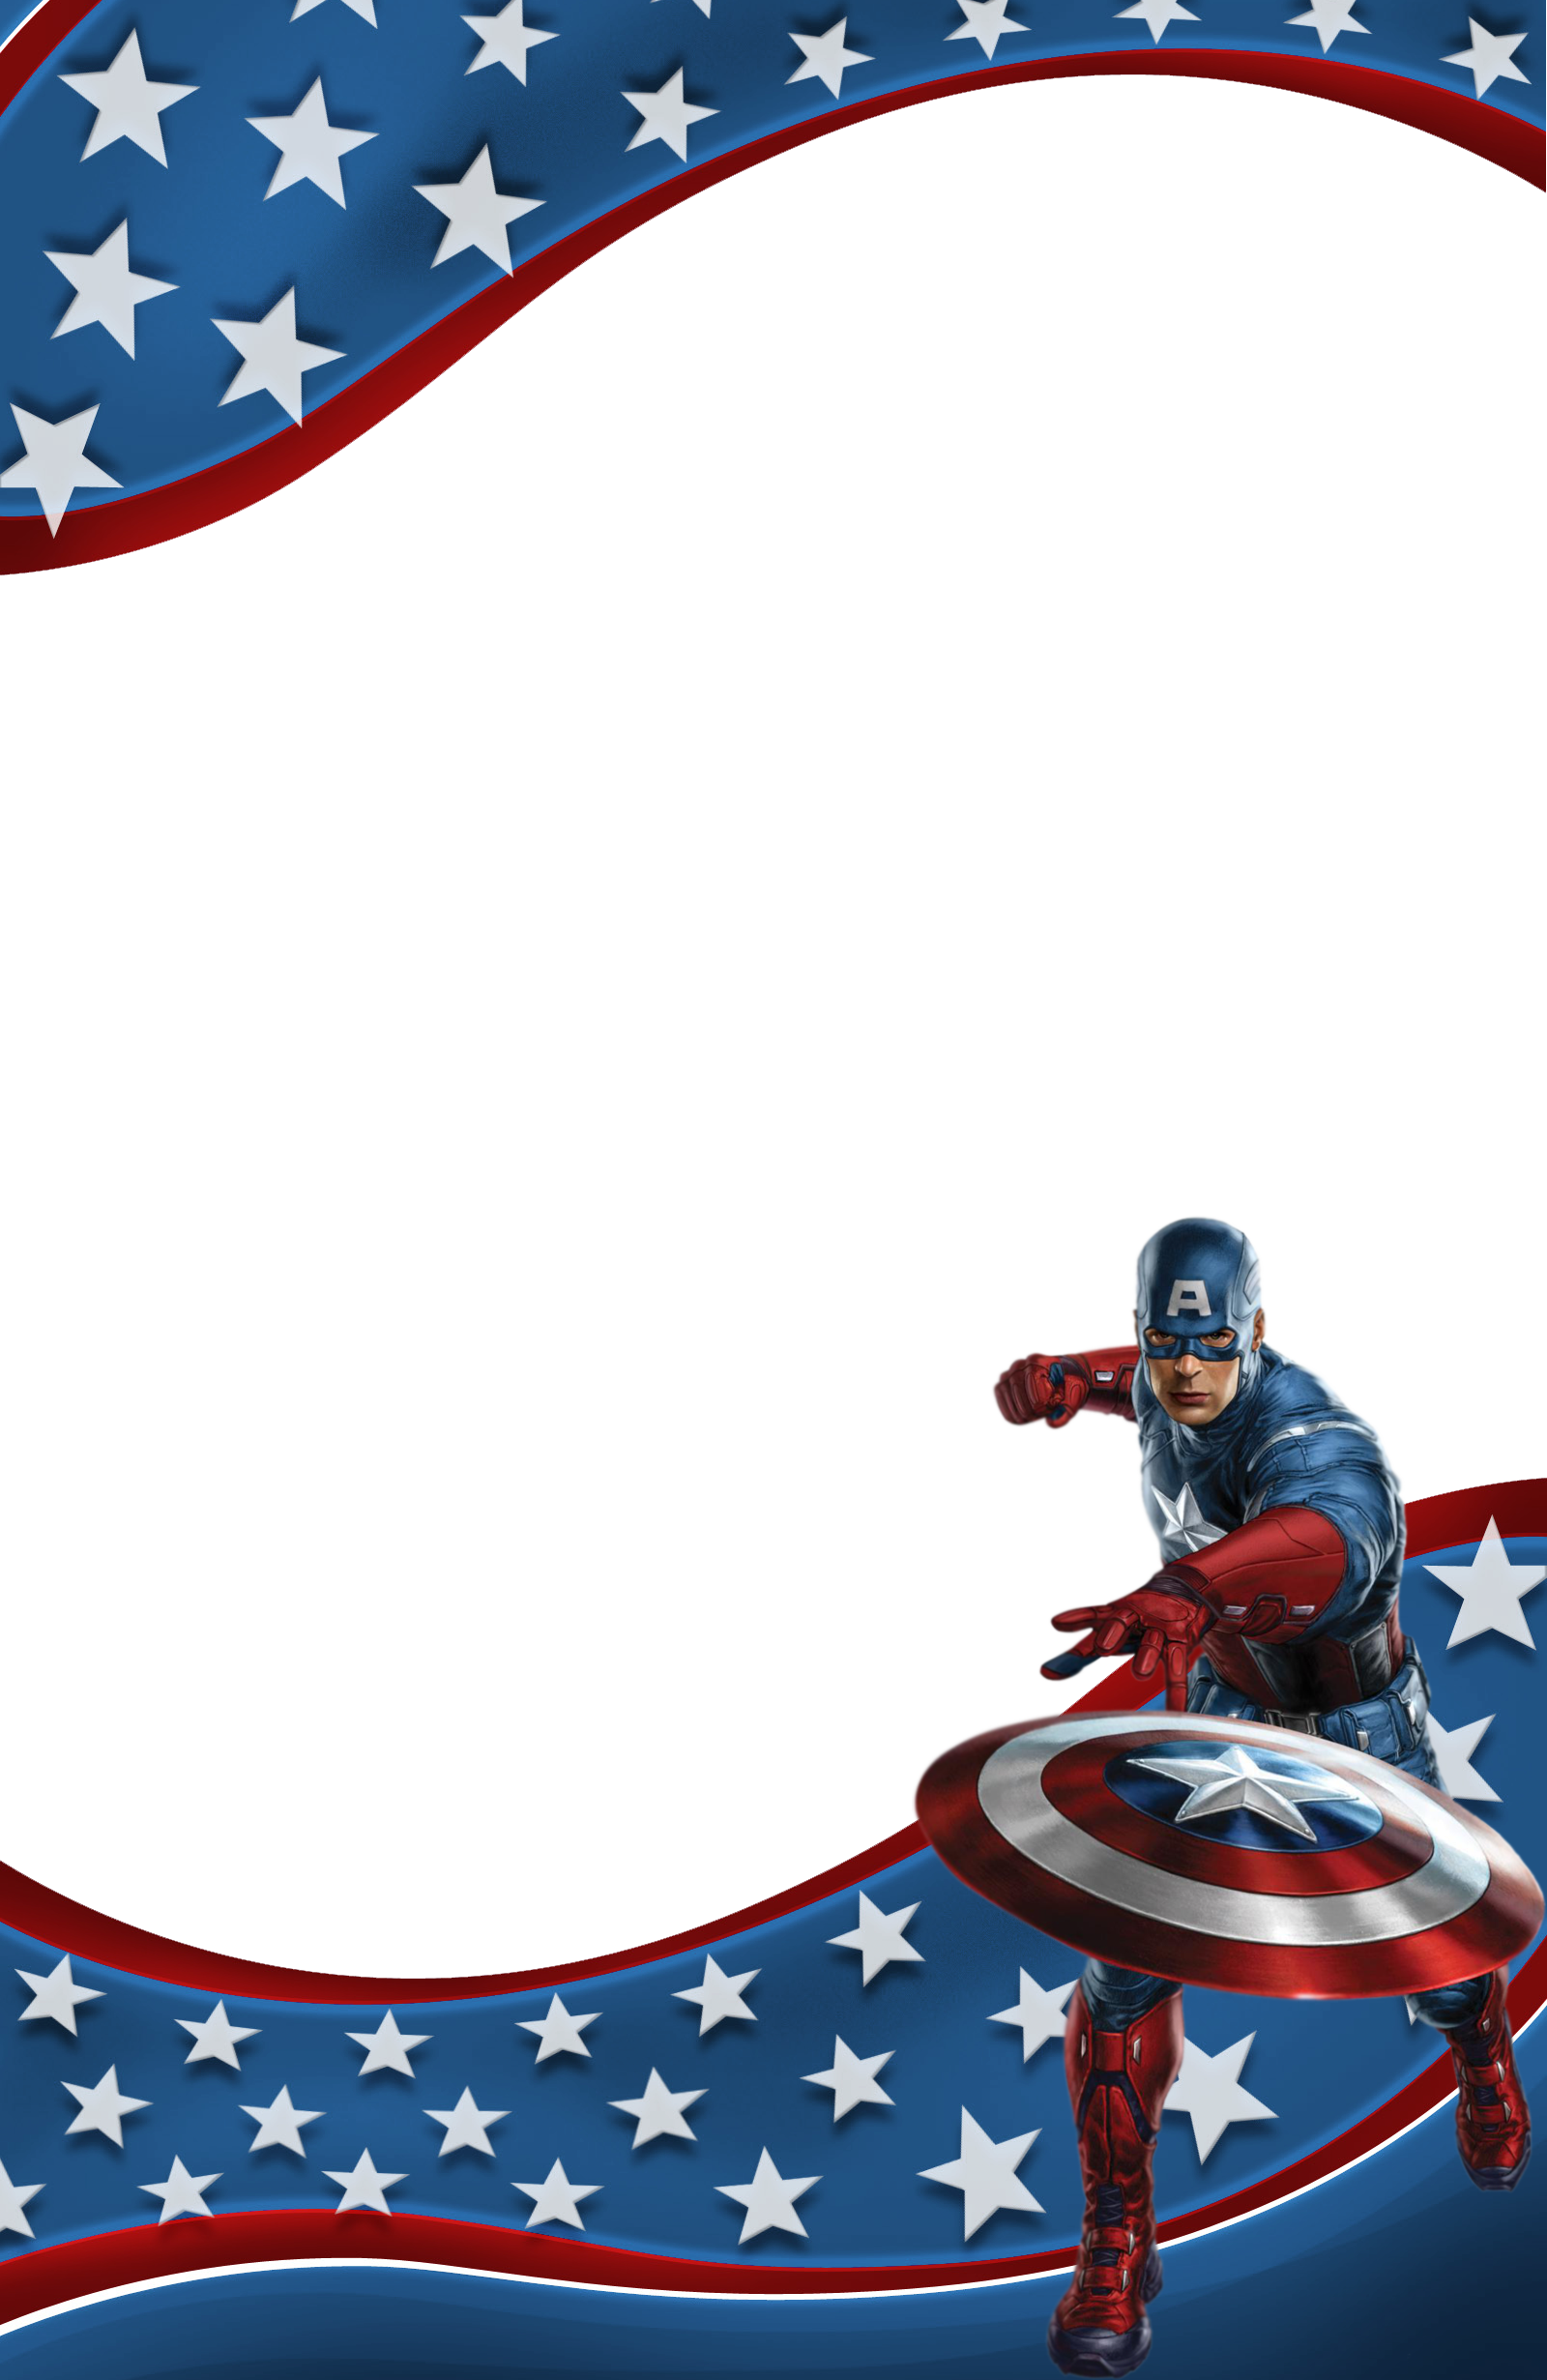 Transparent Kids Frame with Captain America | 2014 FREE | Pinterest | Capt america